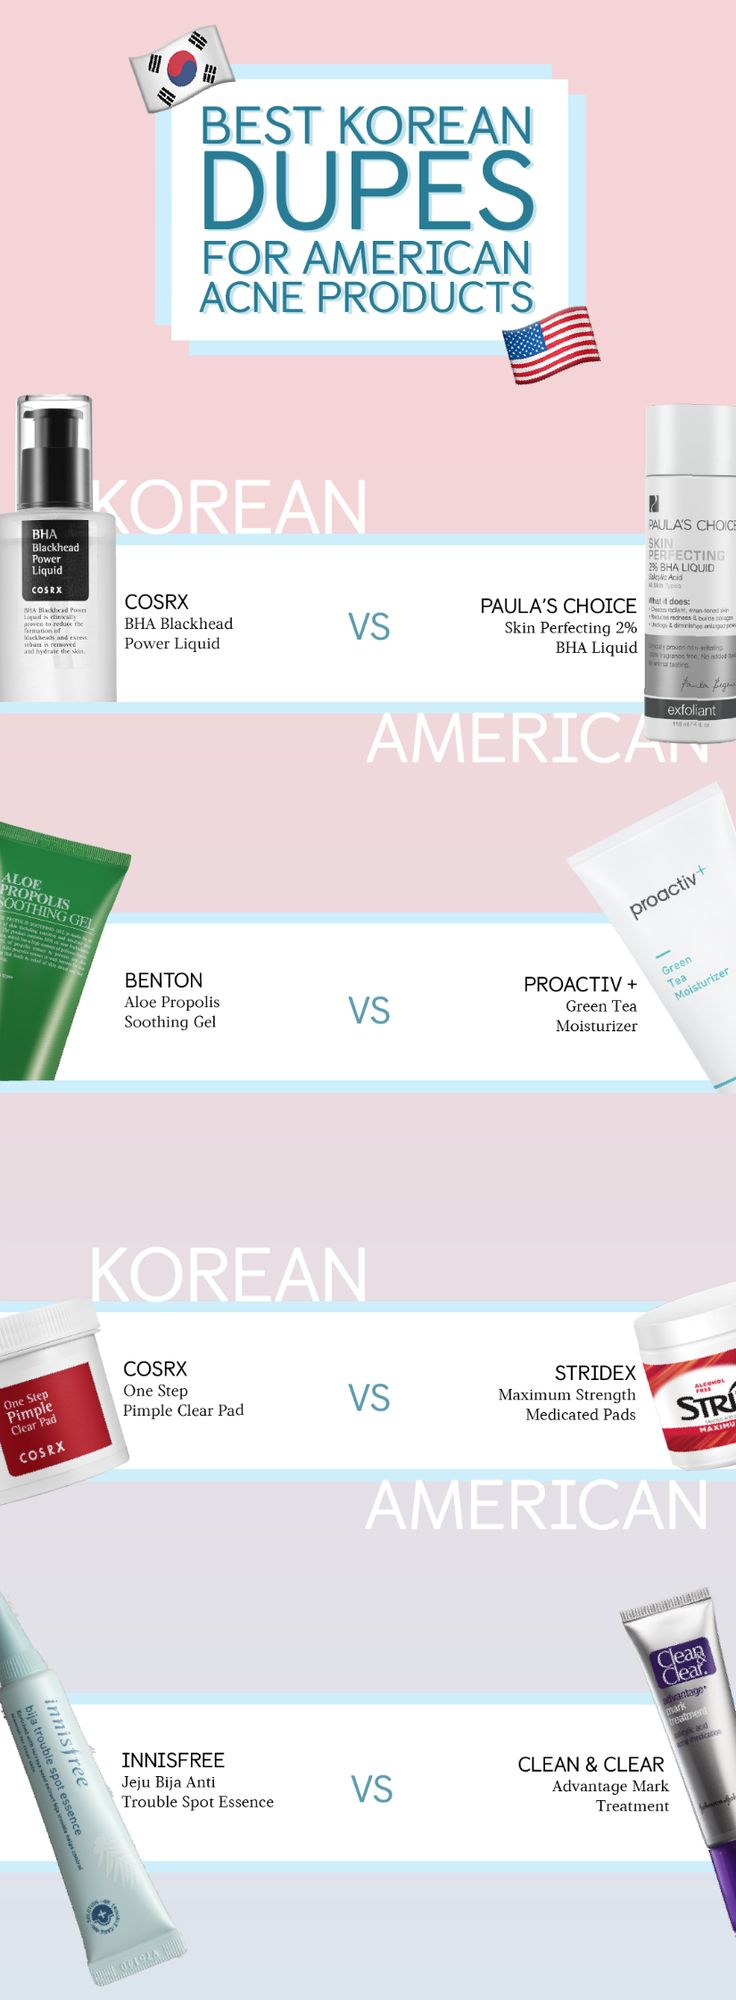 If you're new to K-beauty, you've probably been curious about the wide selection of acne products Korean brands offer. These are the best Korean dupes for American acne products.